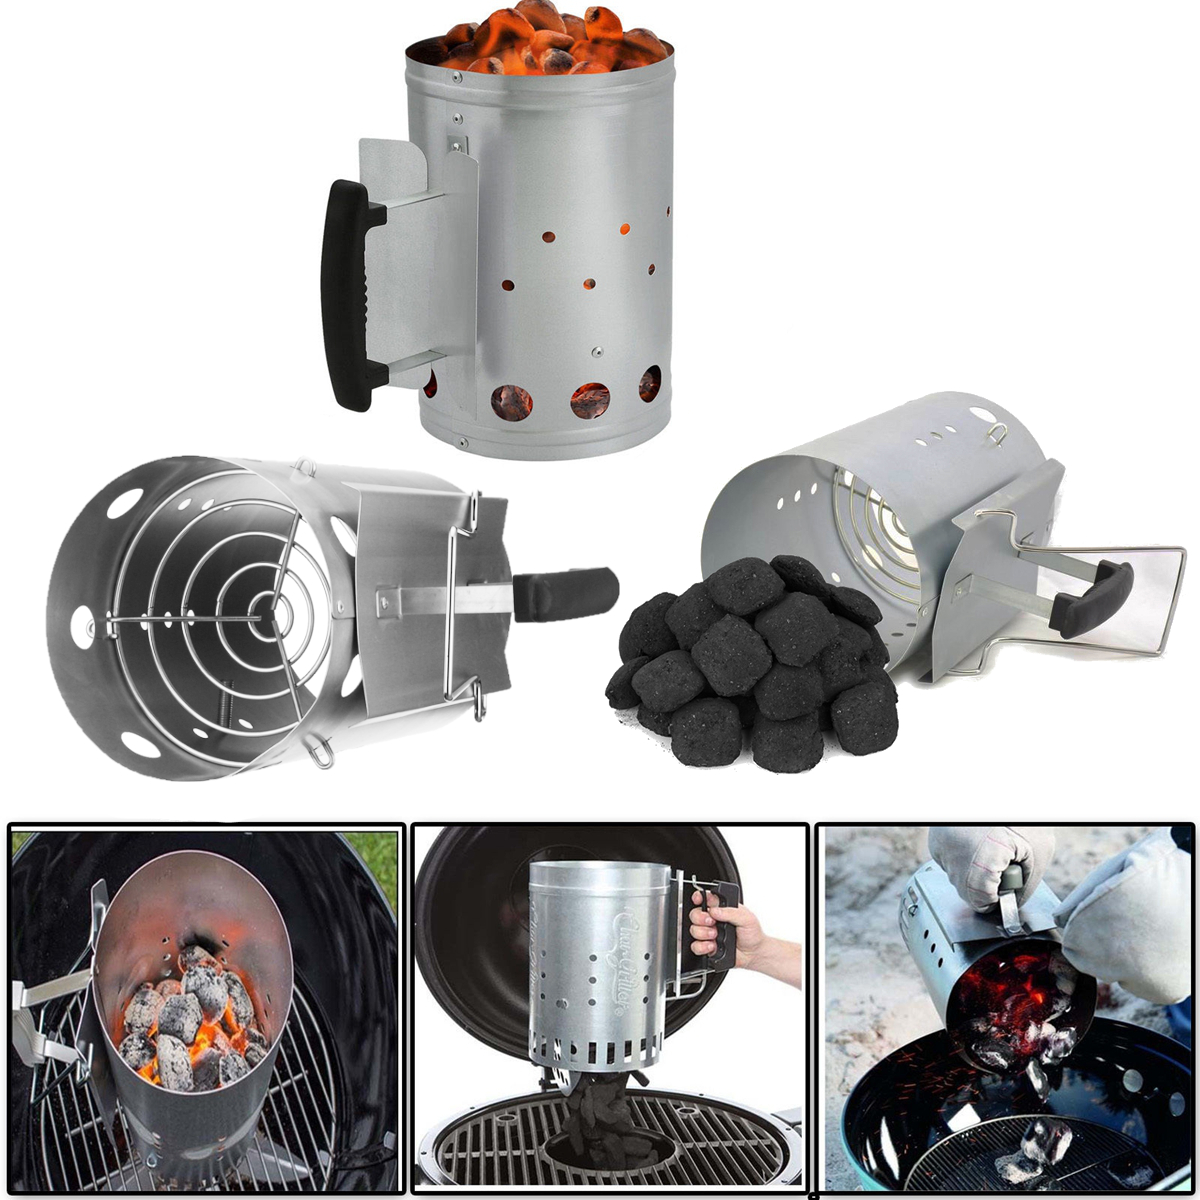 Outdoor Camping Picnic BBQ Barbecue Chimney Charcoal Fuel Starter Charcoal Rapid Quick Grill Fire Starter by